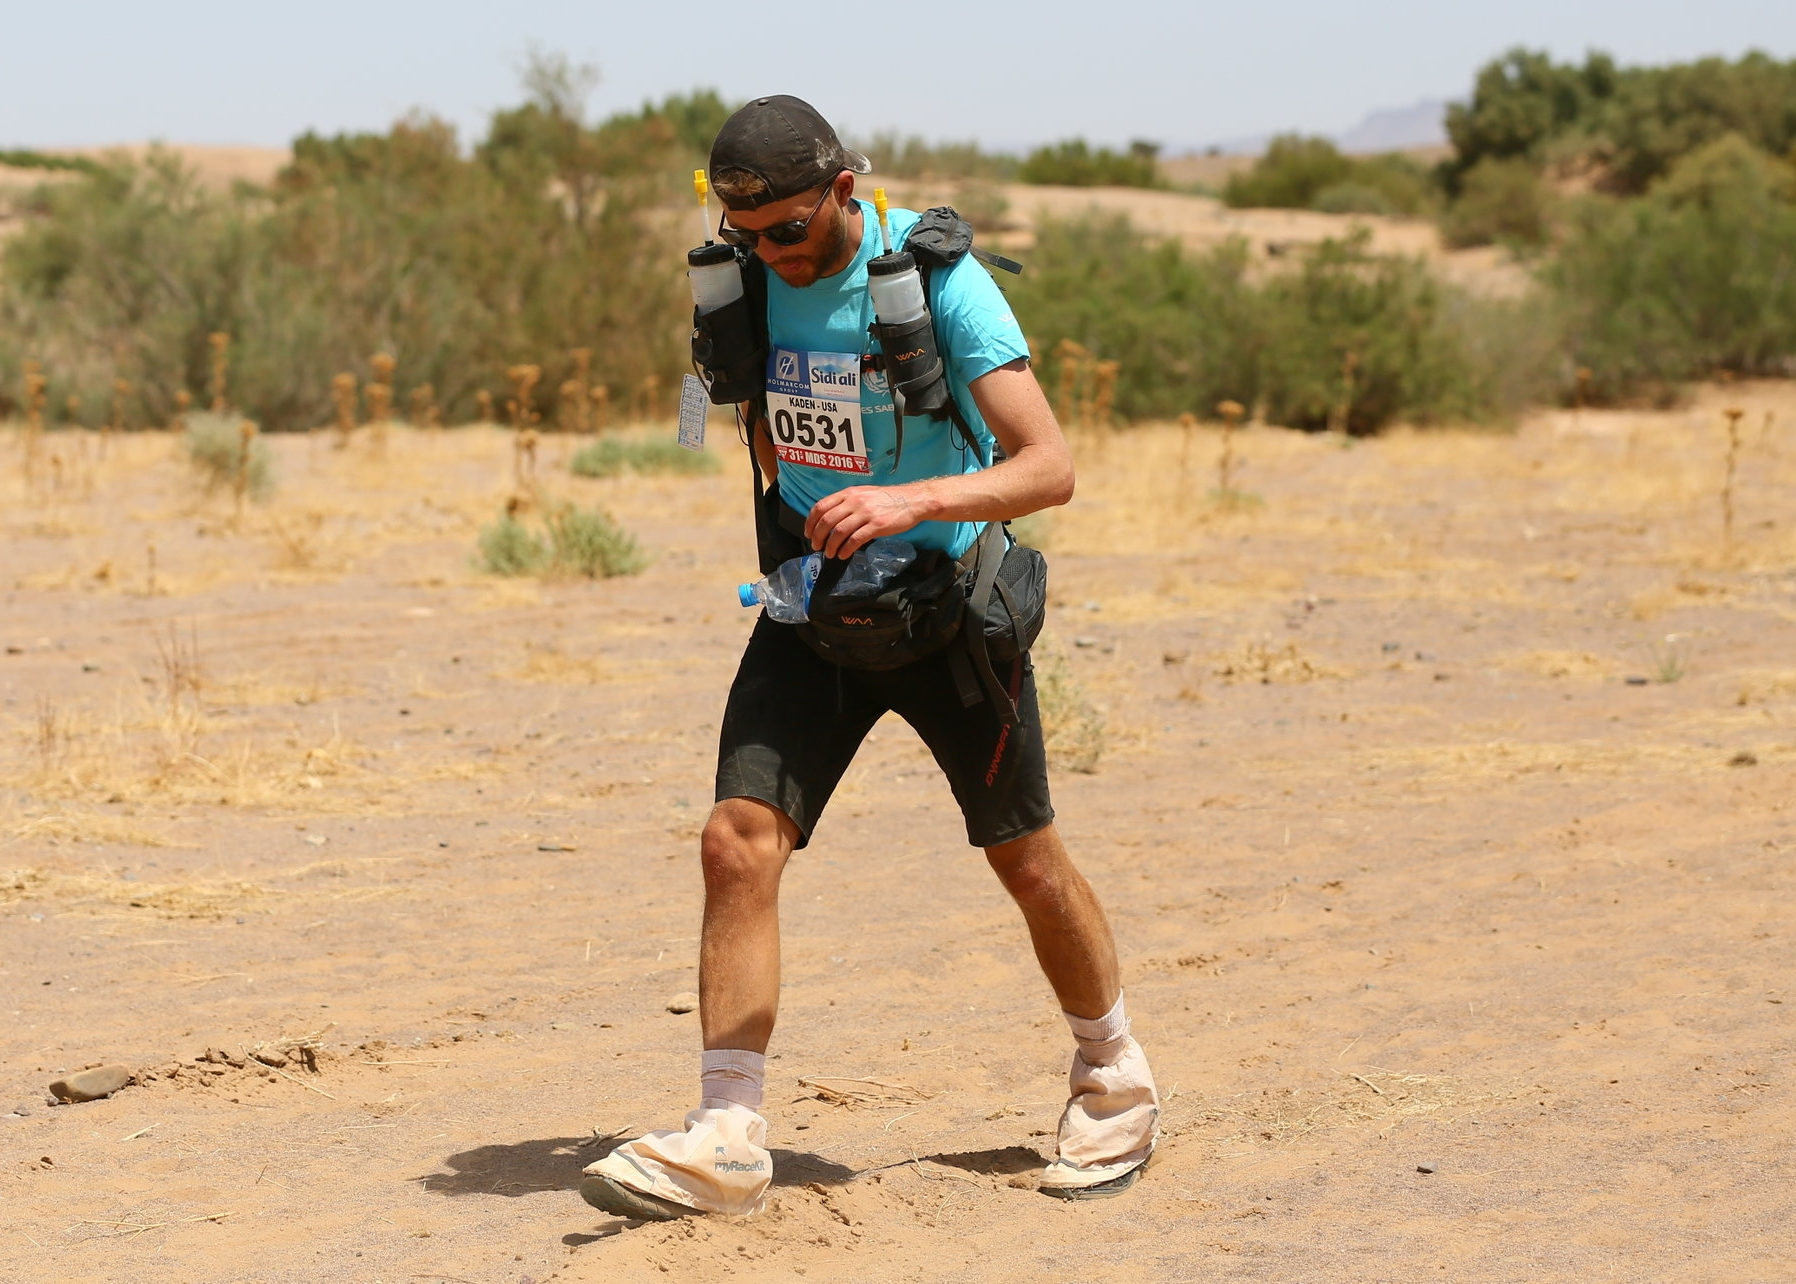 Run 11 more miles in the Sahara after the MDS has officially ended? Why not?I may be only minutes away from heat stroke, but WHATEVS!